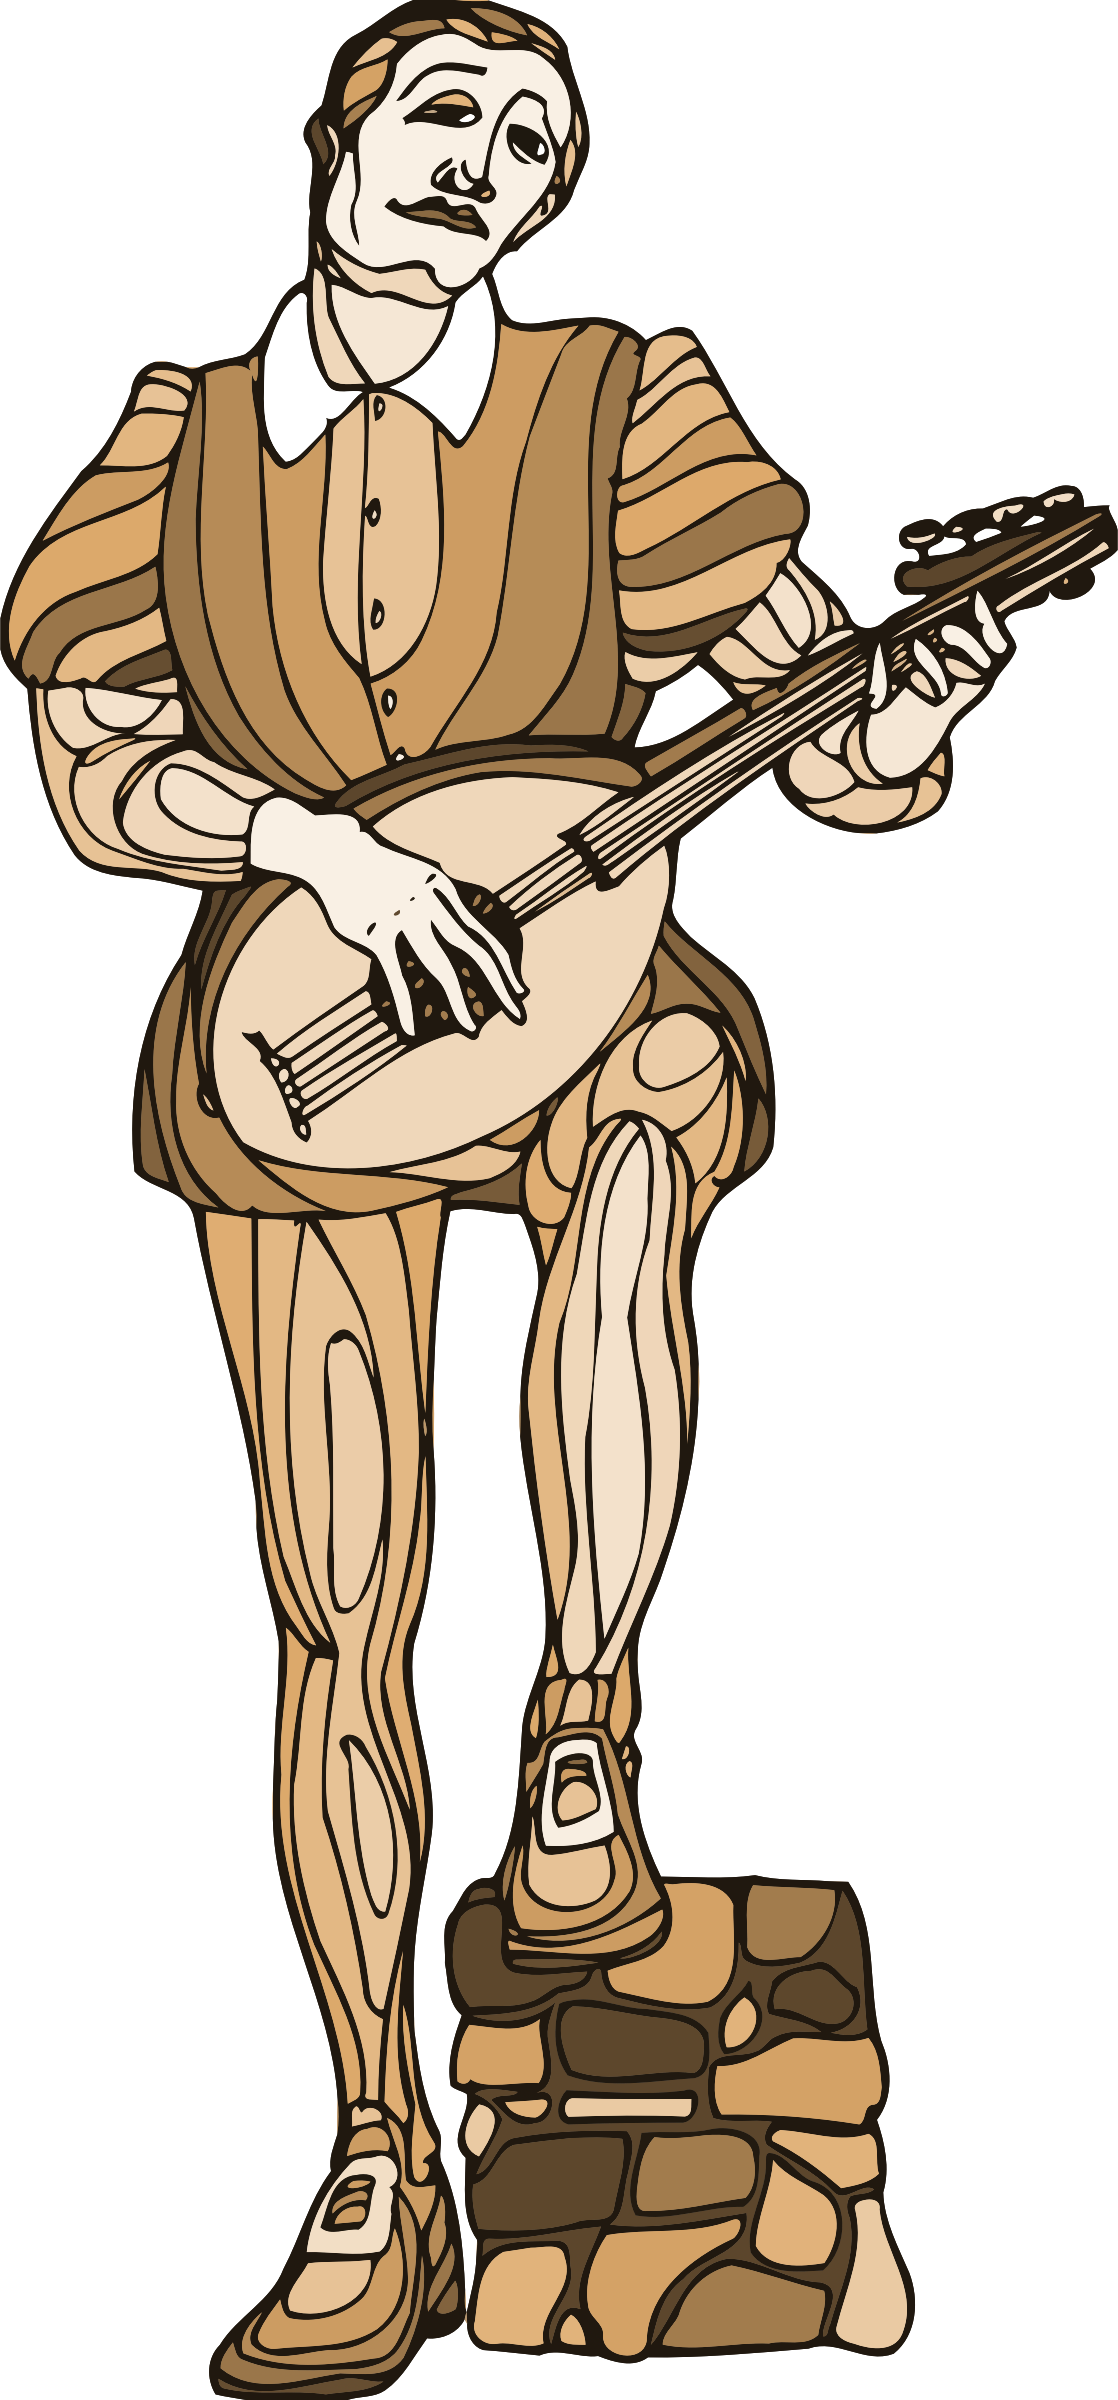 Shakespeare characters - musician 2 by Firkin